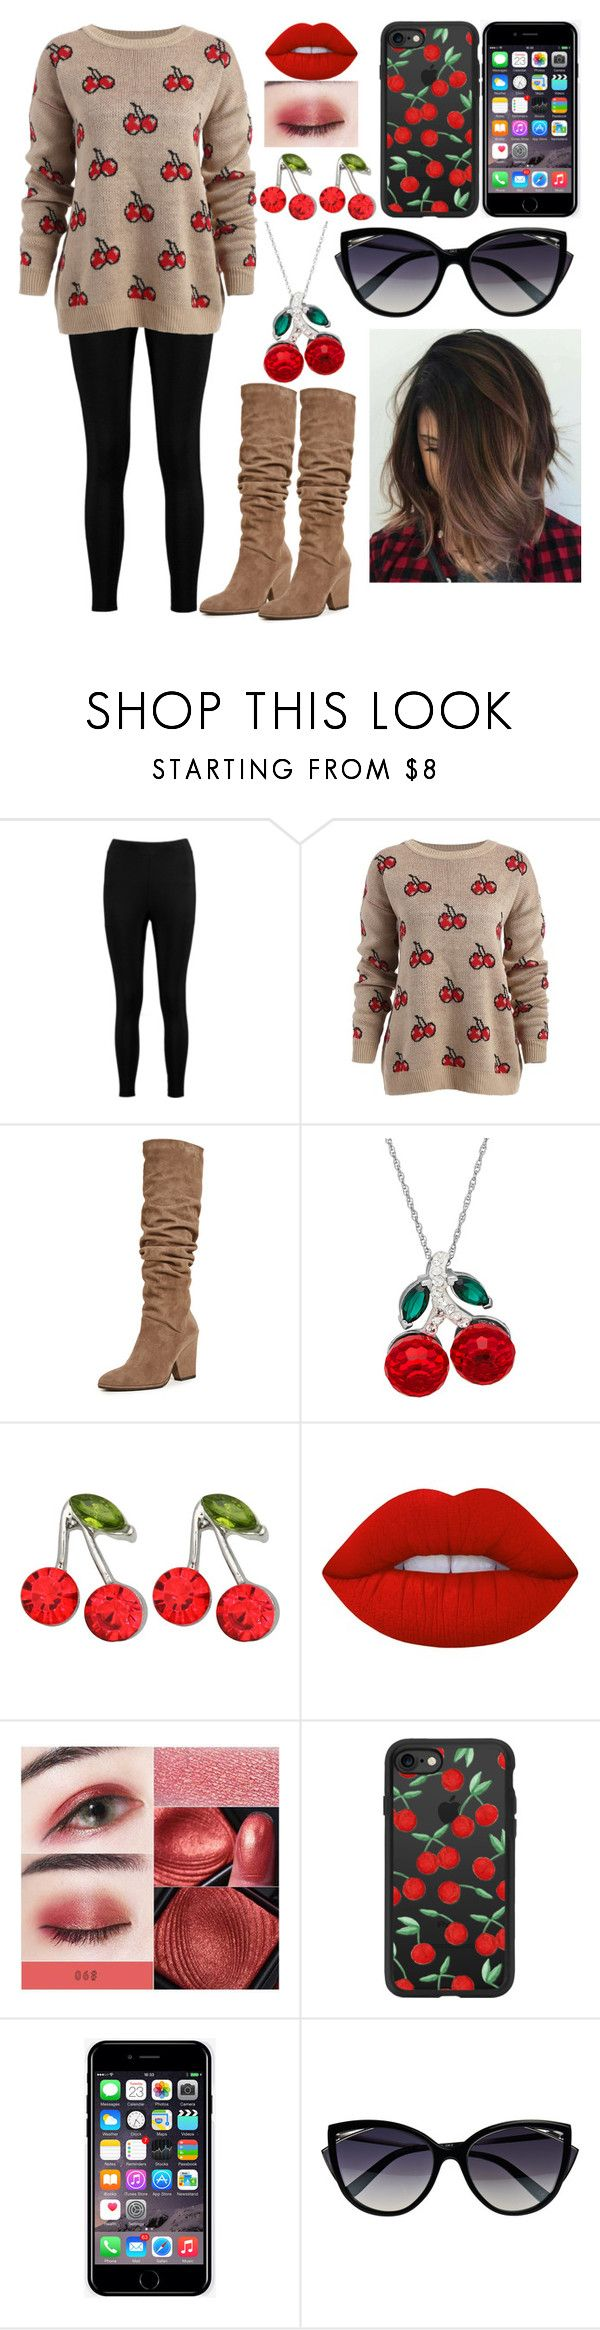 """""""She's my Cherry Pie!"""" by kiara-fleming ❤ liked on Polyvore featuring Boohoo, Stuart Weitzman, Kate Marie, Lime Crime, Casetify, Off-White and La Perla"""